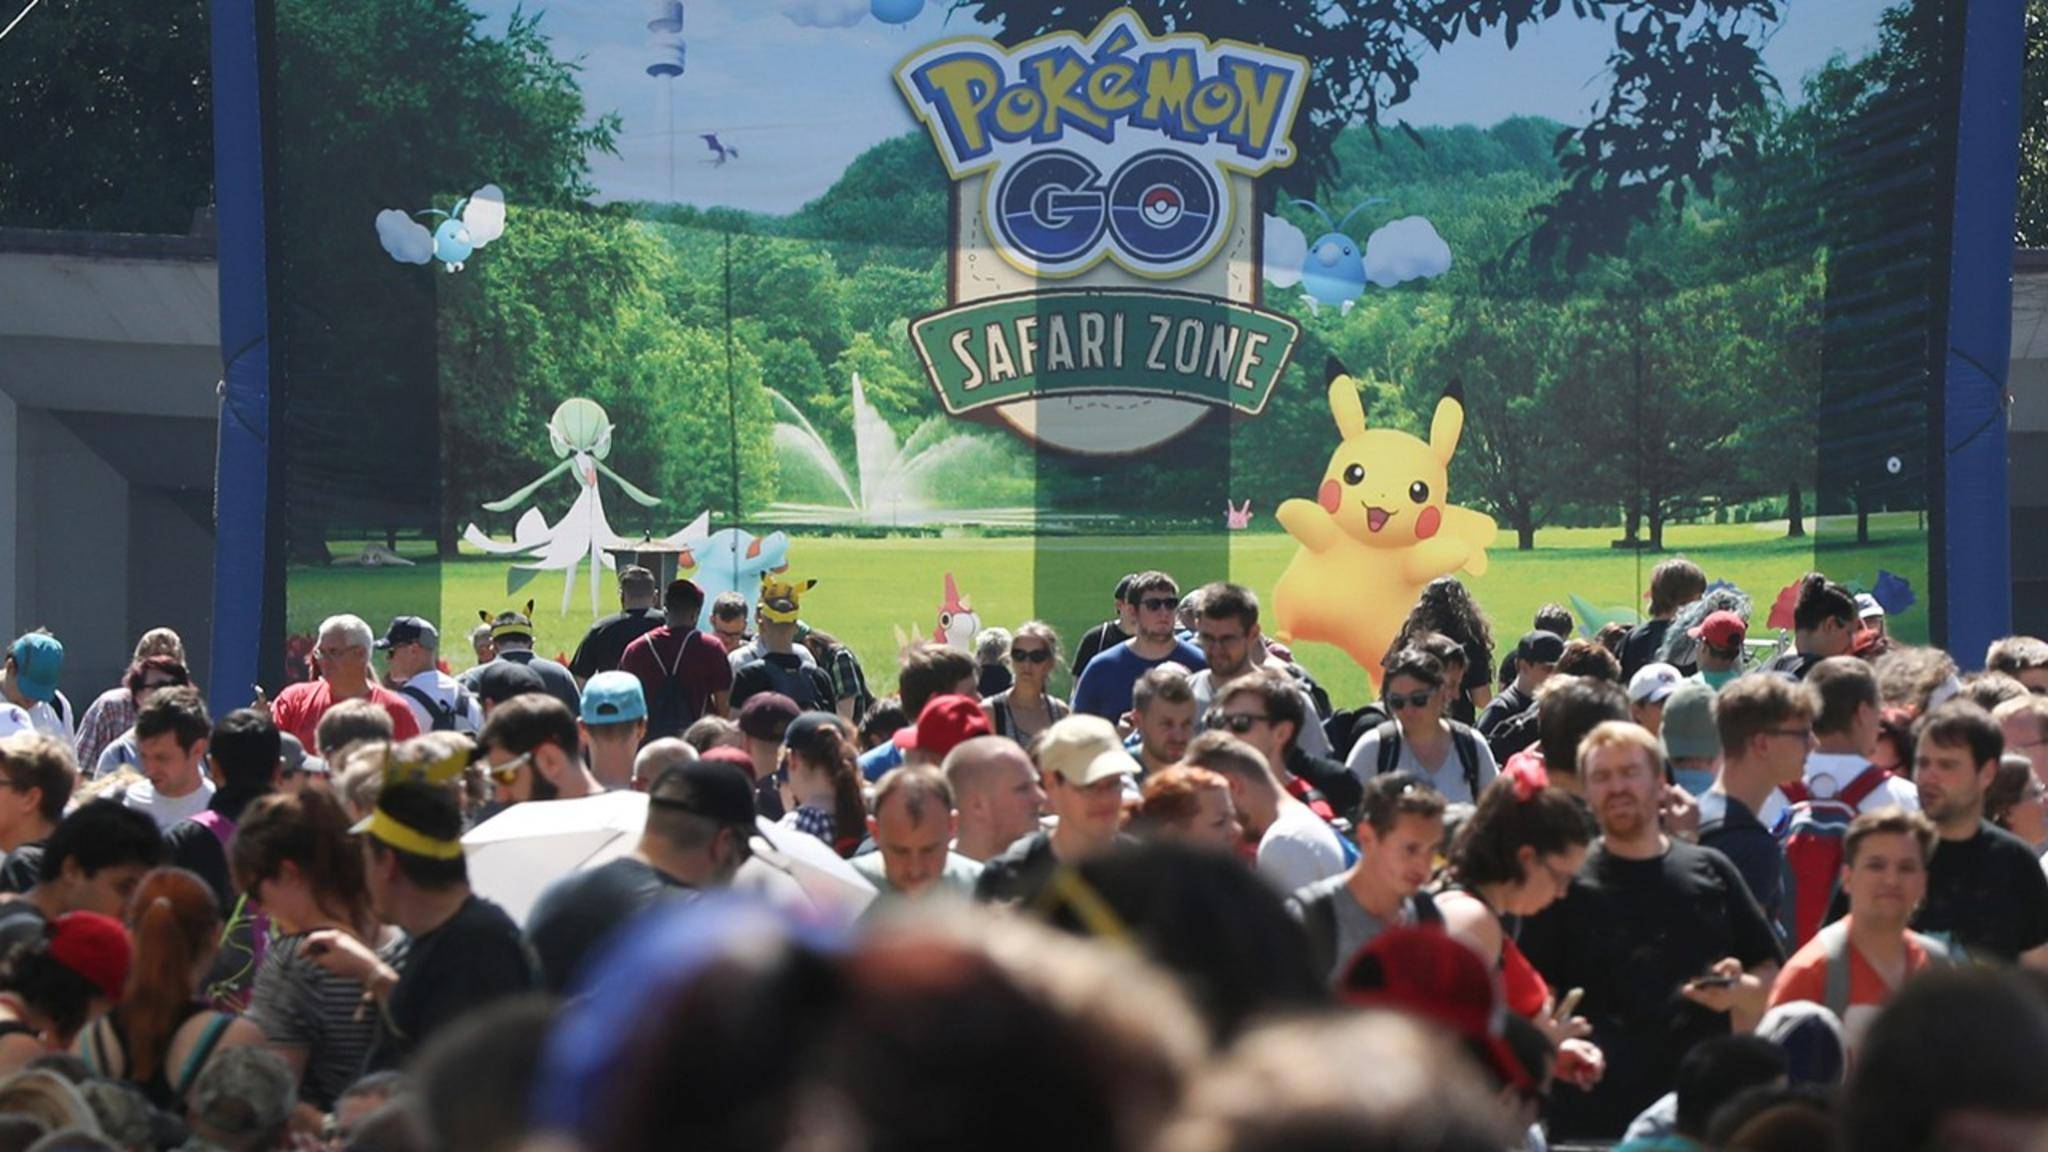 pokemon-go-safari-zone-dortmund